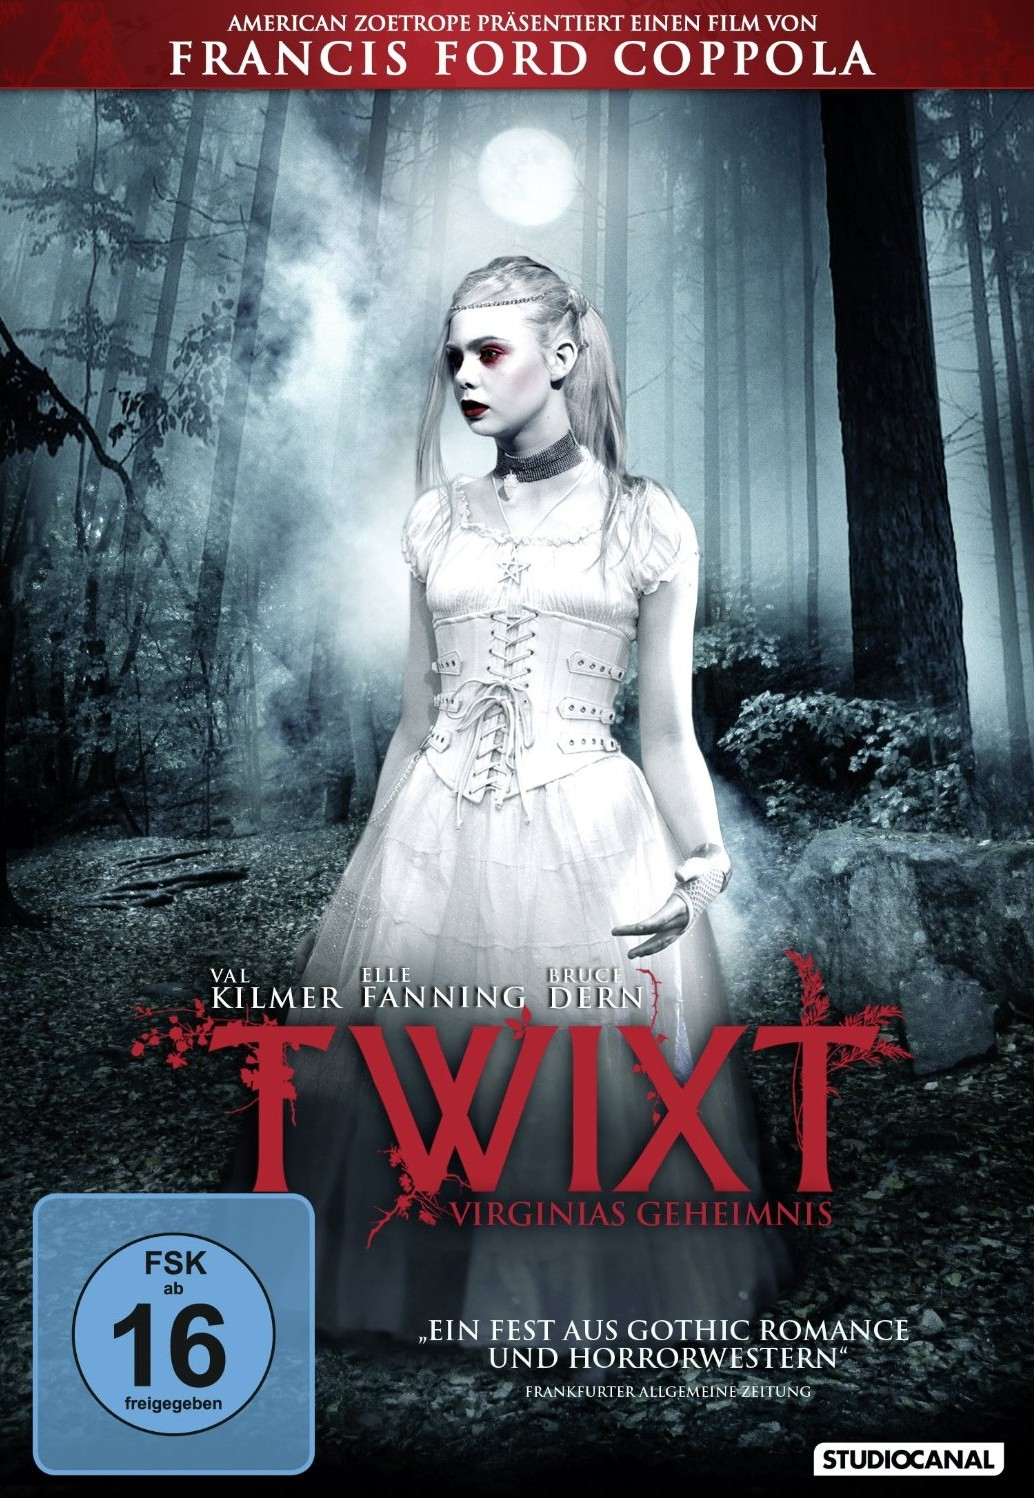 Taliesin meets the vampires: Twixt – review